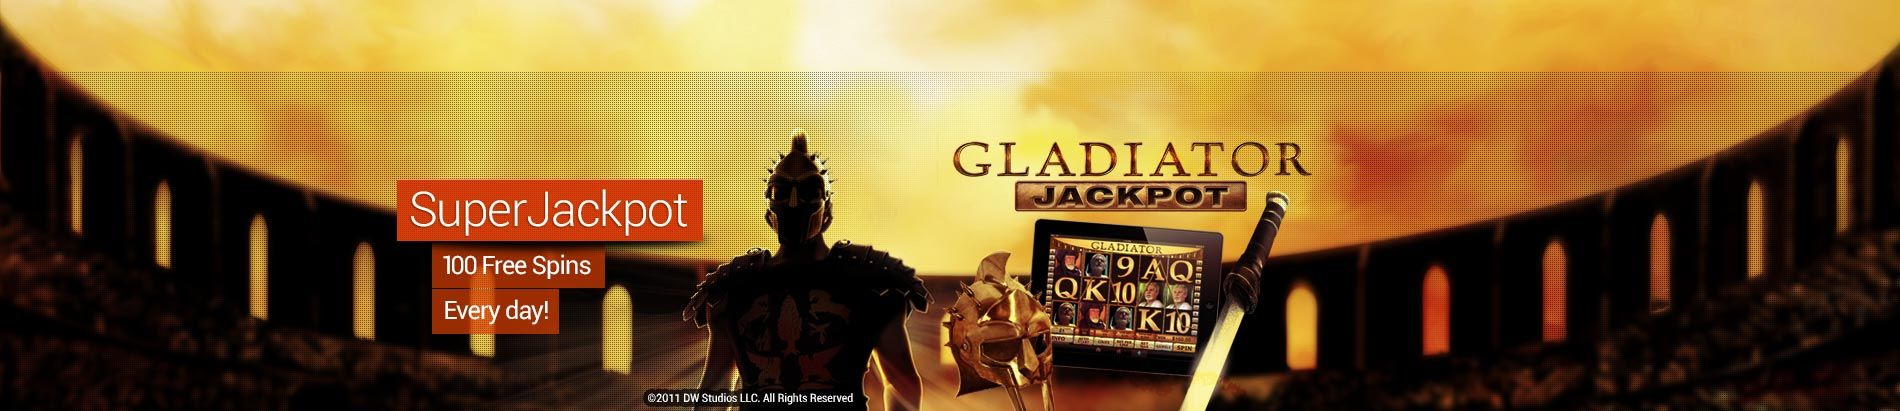 gladiator jackpot free spins